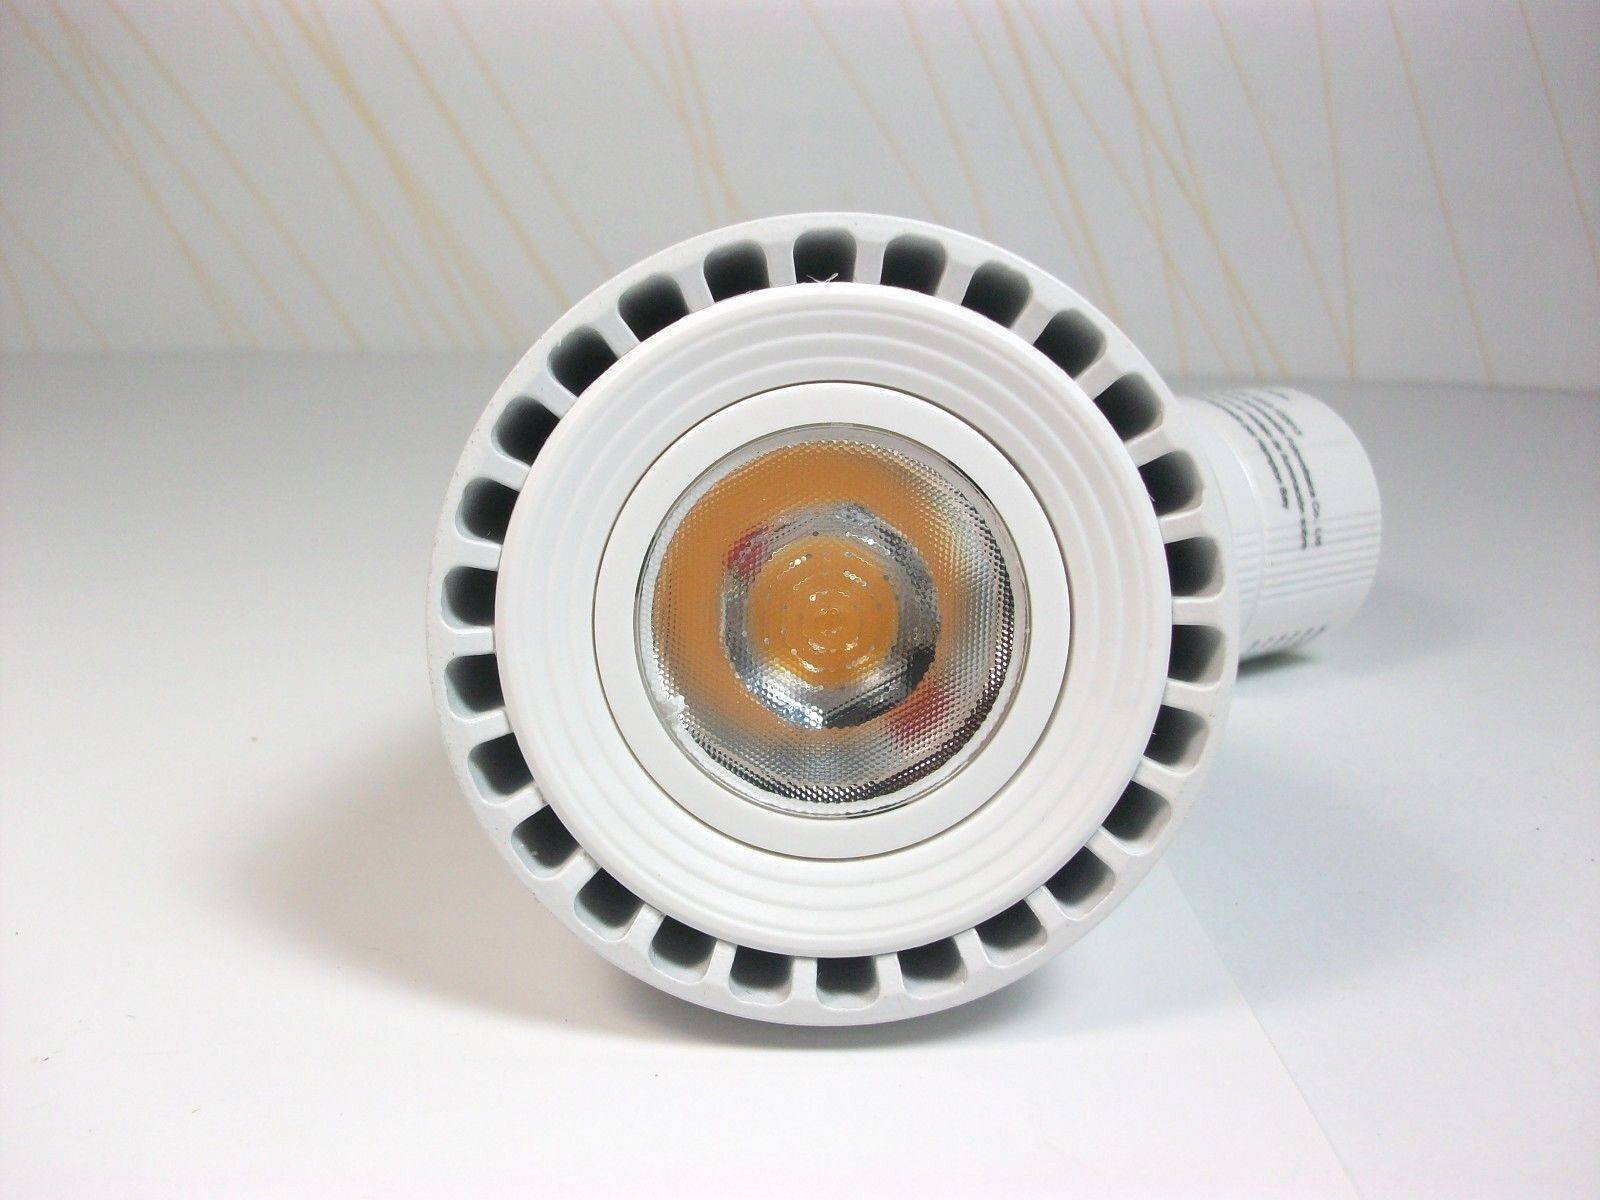 Maximus 3.75 in. White LED Dimmable Track Lighting Spot Head